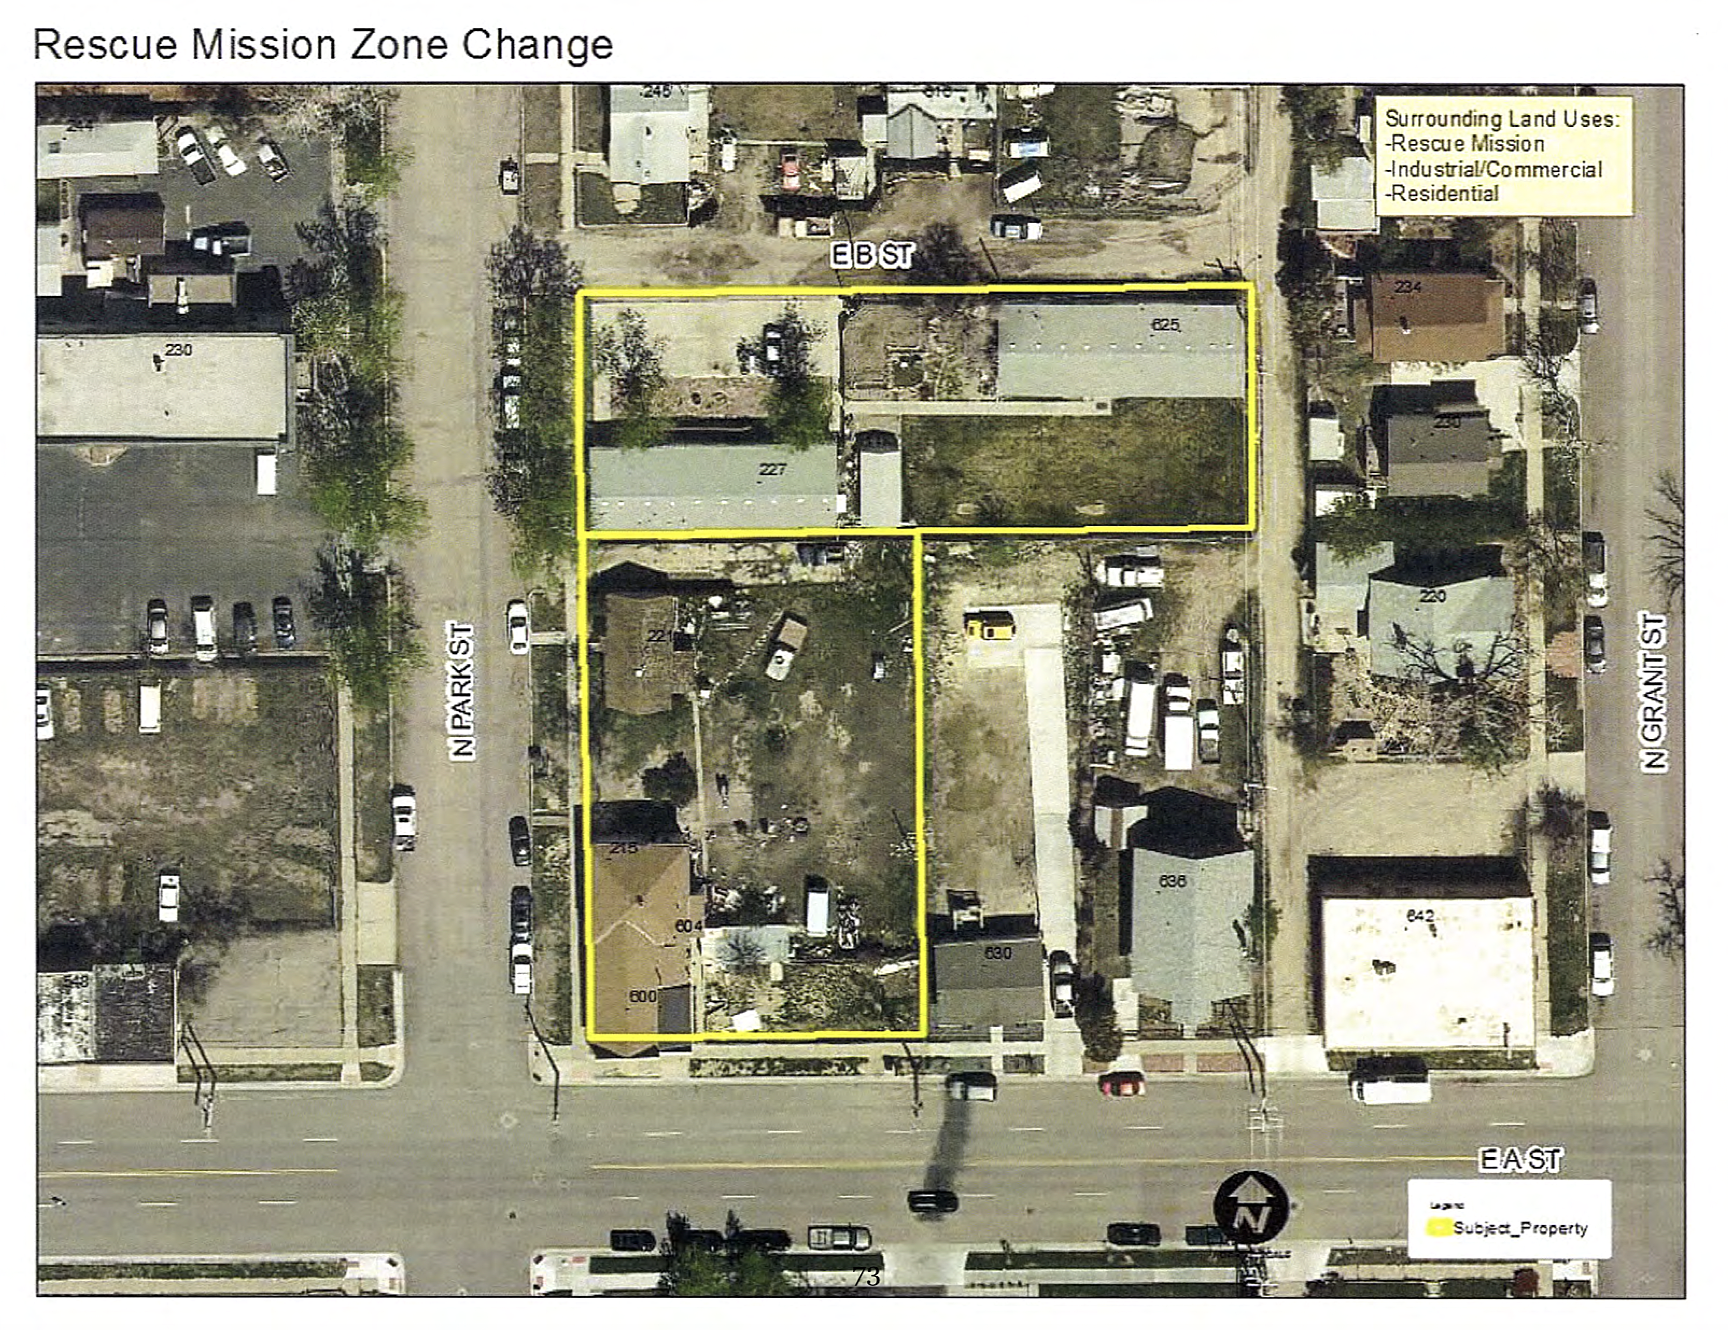 Casper City Council Gives Initial OK to Rezone Land for Mission